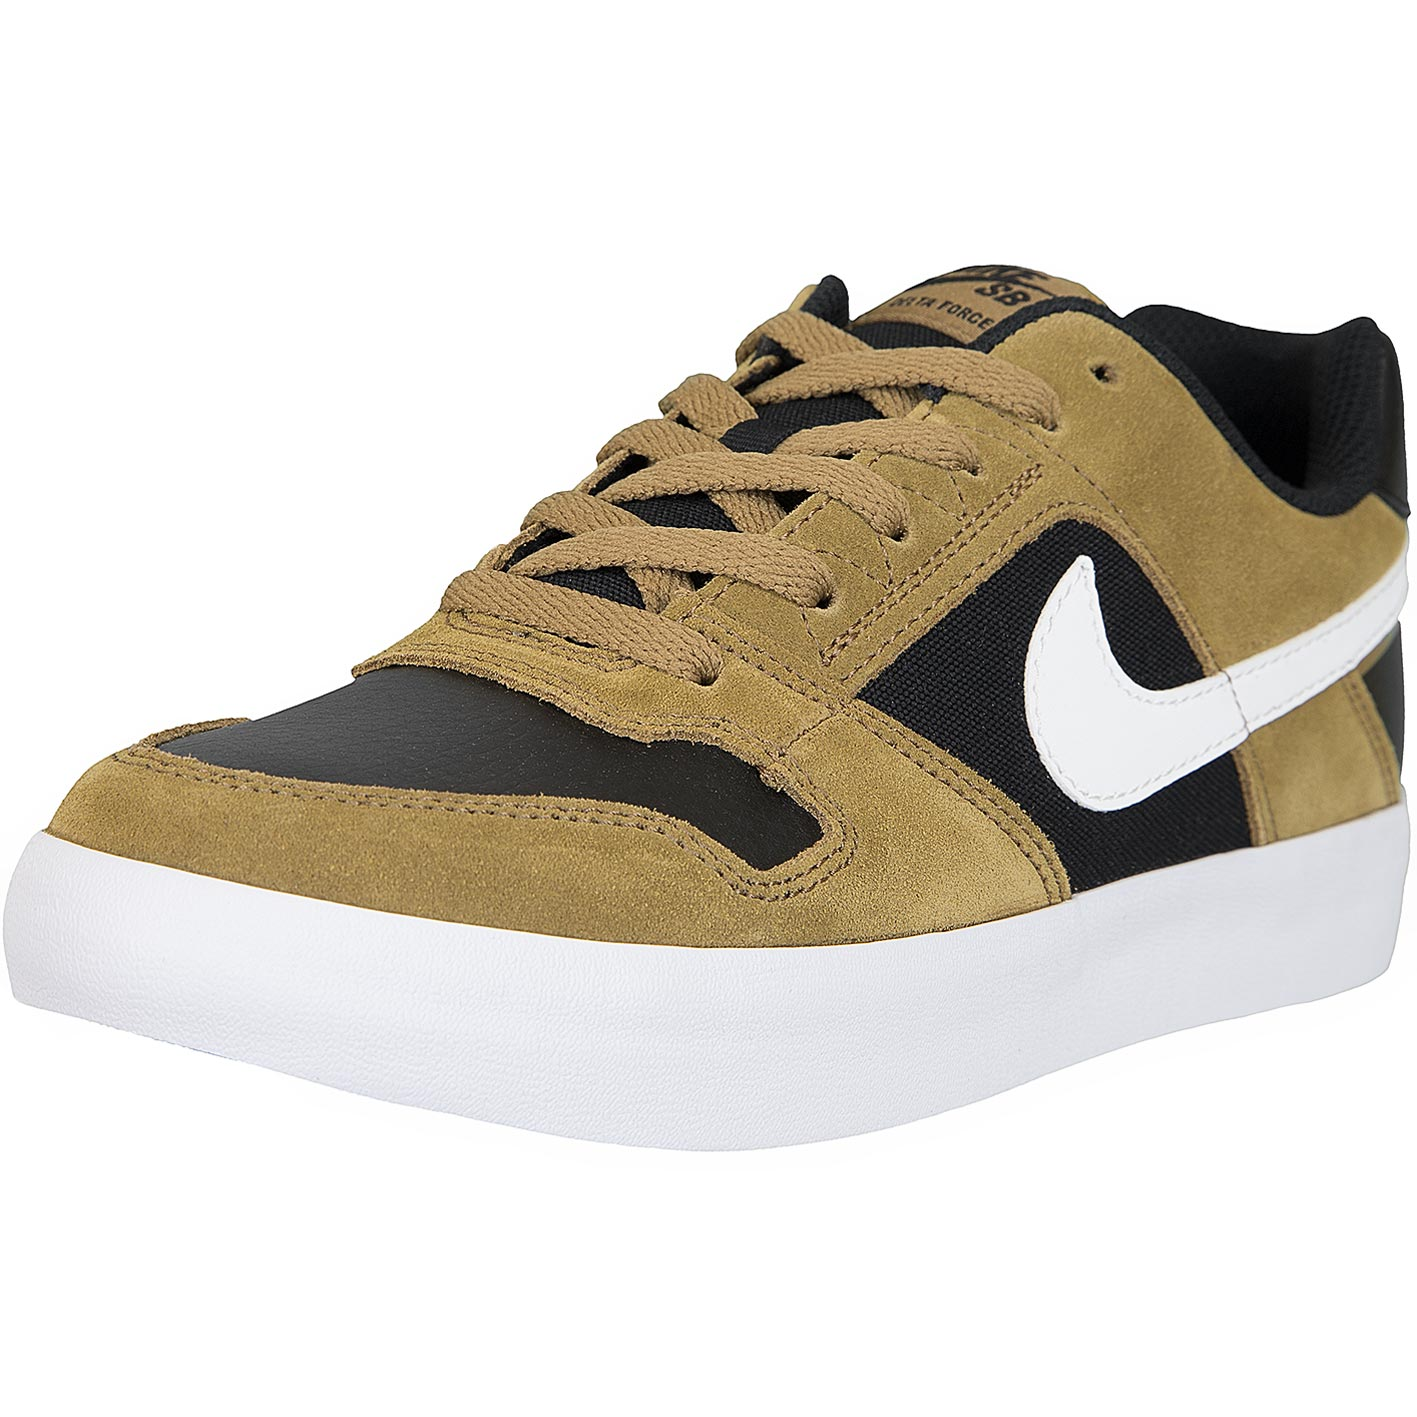 100% genuine great prices website for discount nike sb schwarz and tan